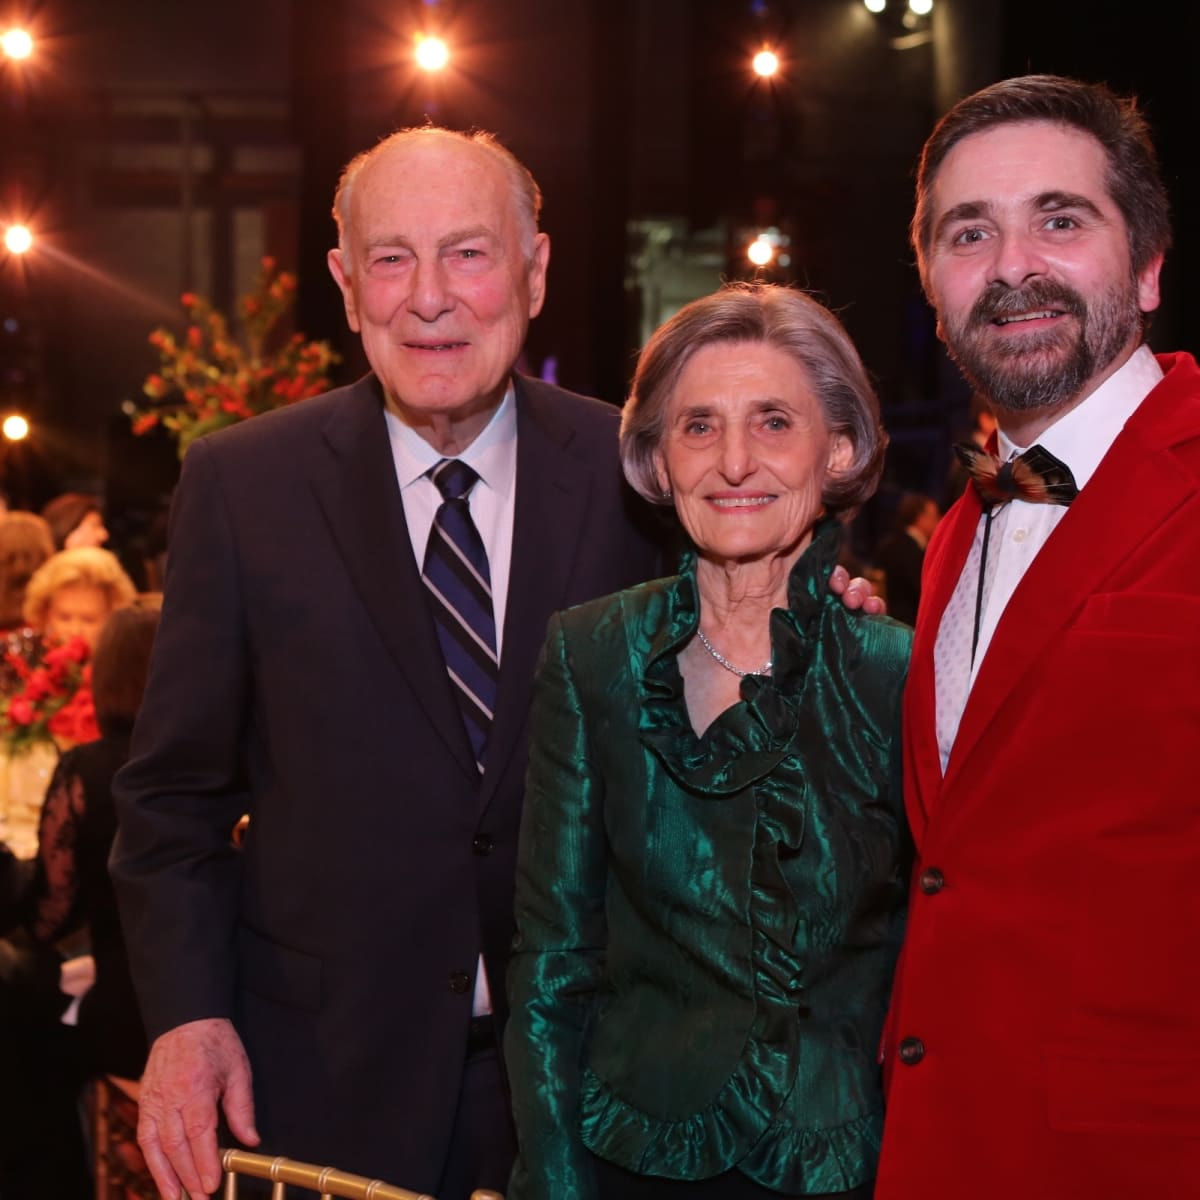 News, Houston Ballet Jubilee of Dance, Dec. 2015, Ted Barr, Melza Barr, Stanton Welch